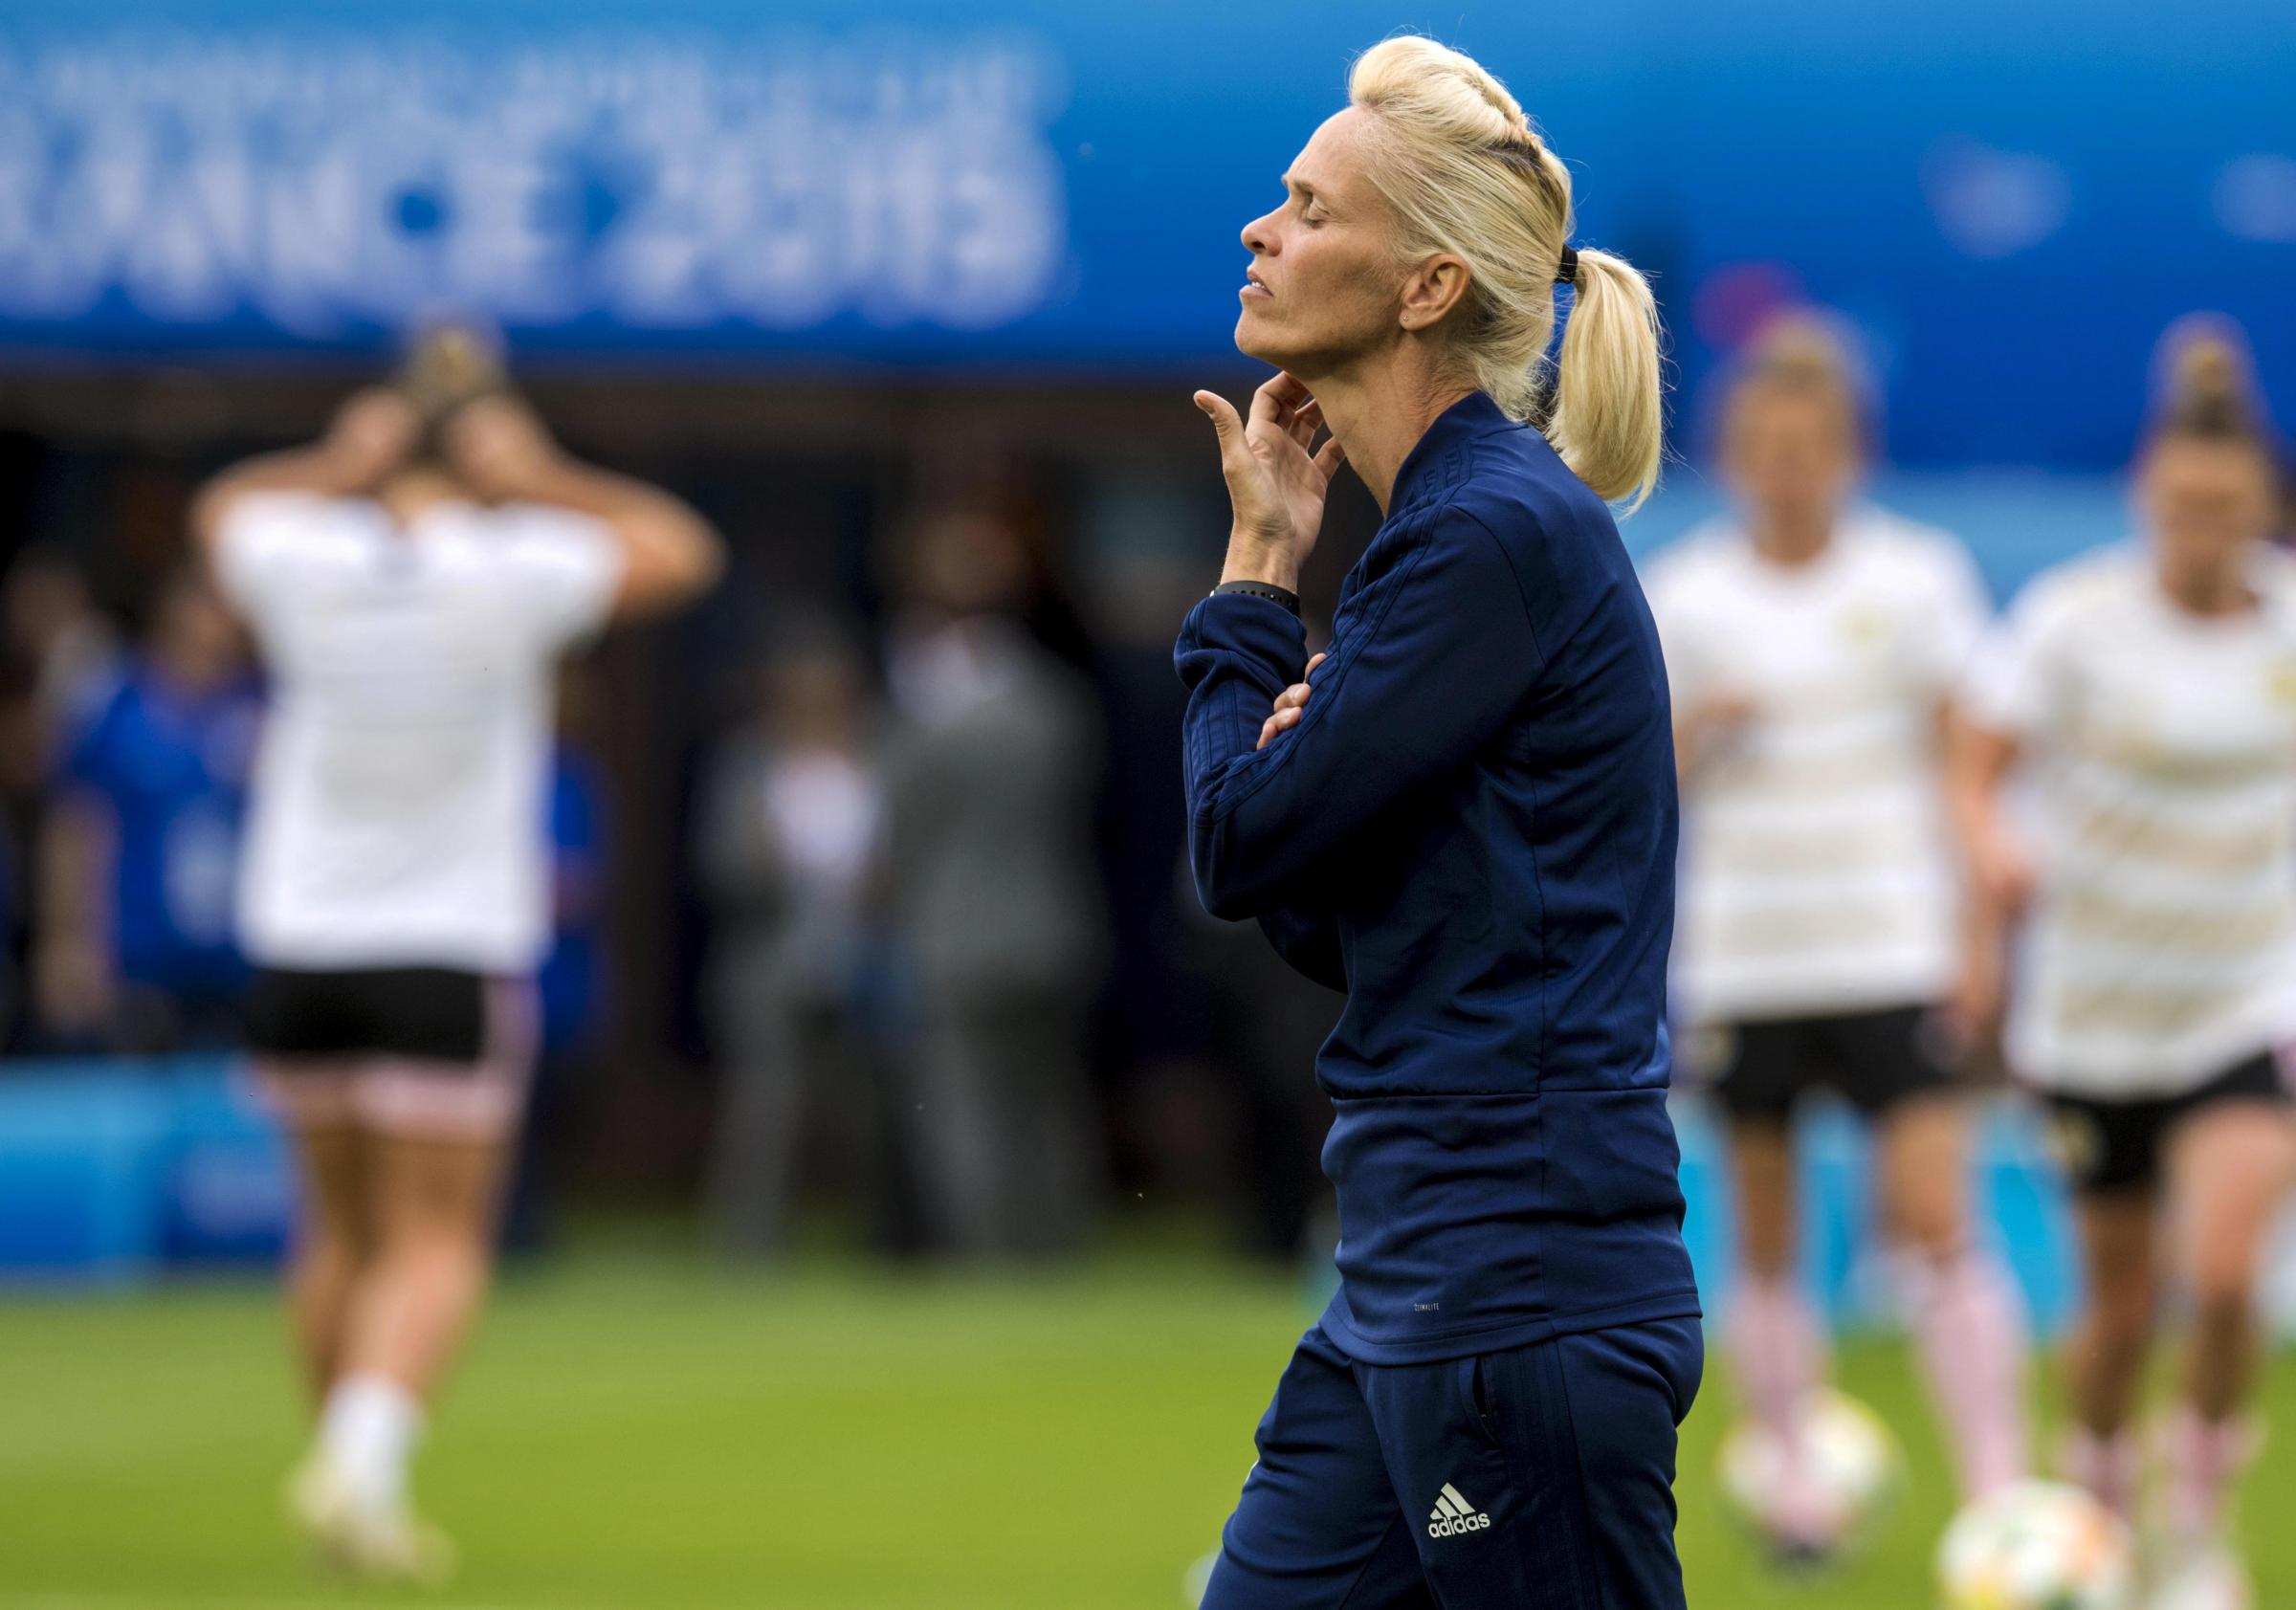 Scotland women's coach Shelley Kerr is 'judged worse than a man', claims World Cup winner